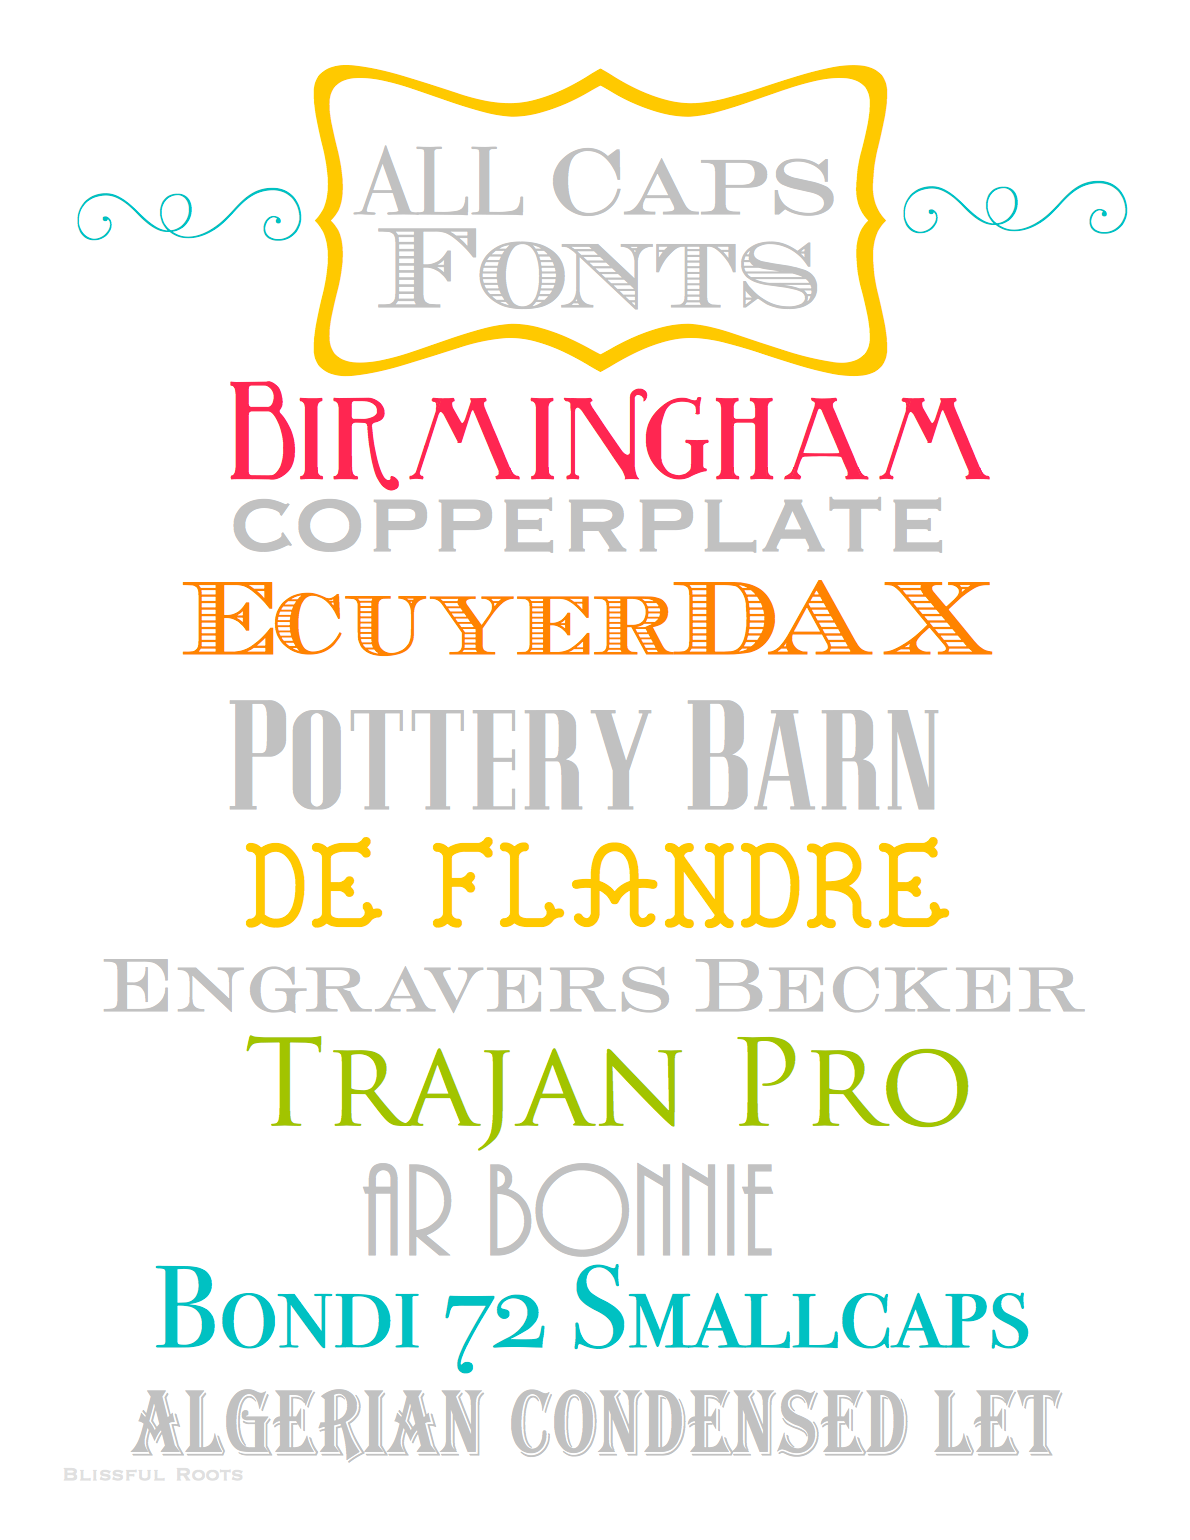 BLISSFUL ROOTS: Ten Free ALL CAPS Fonts